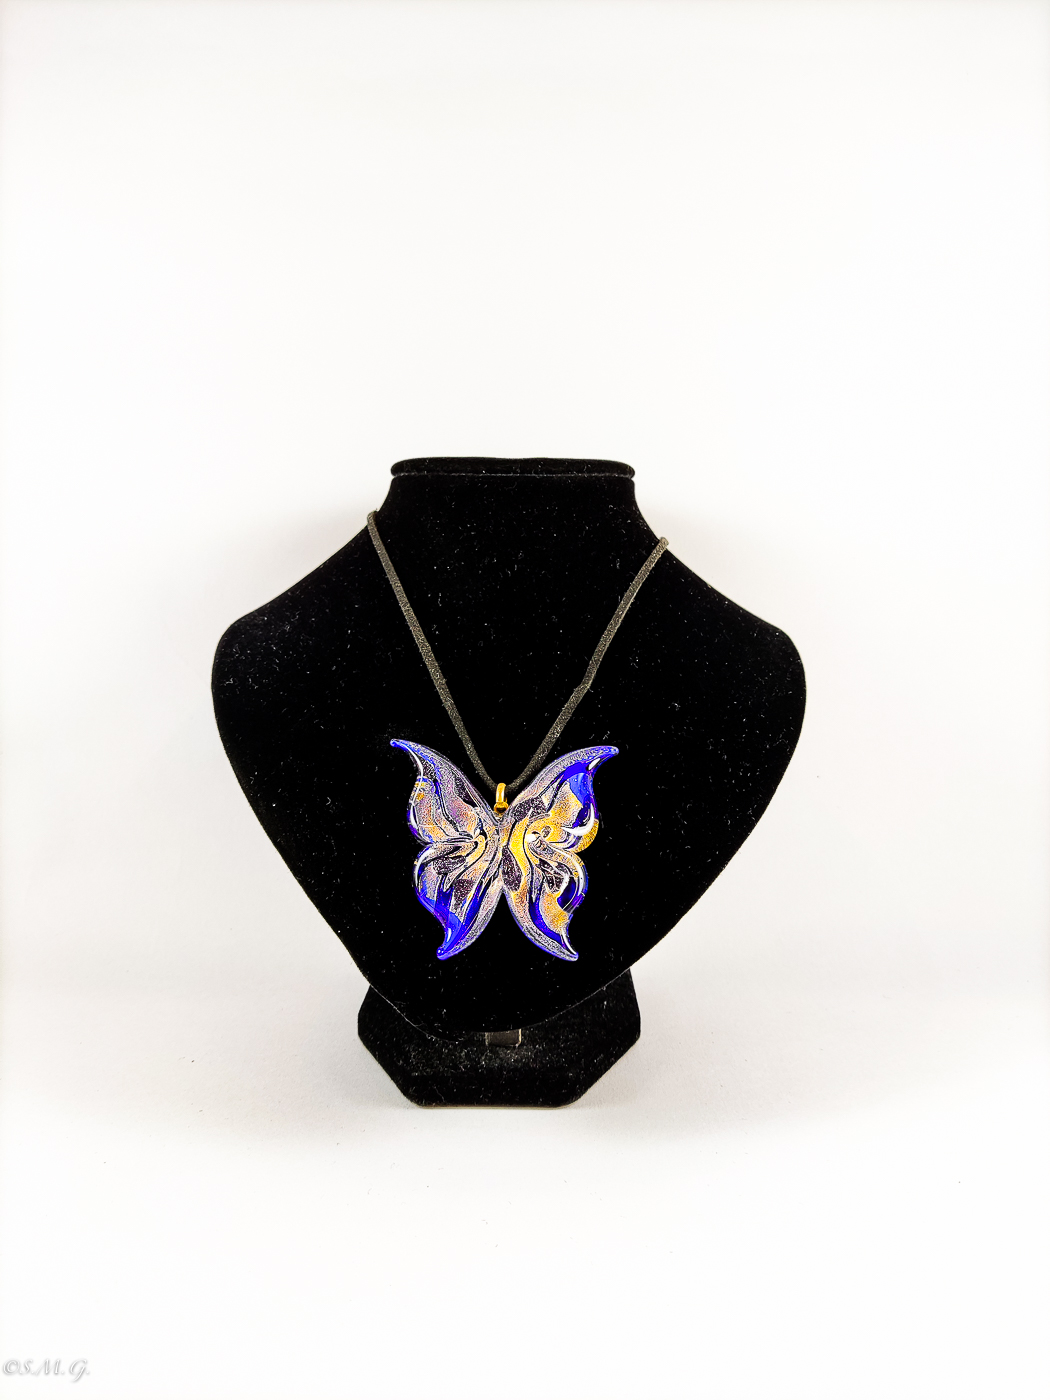 Murano Glass pendant in the shape of a butterfly on a string